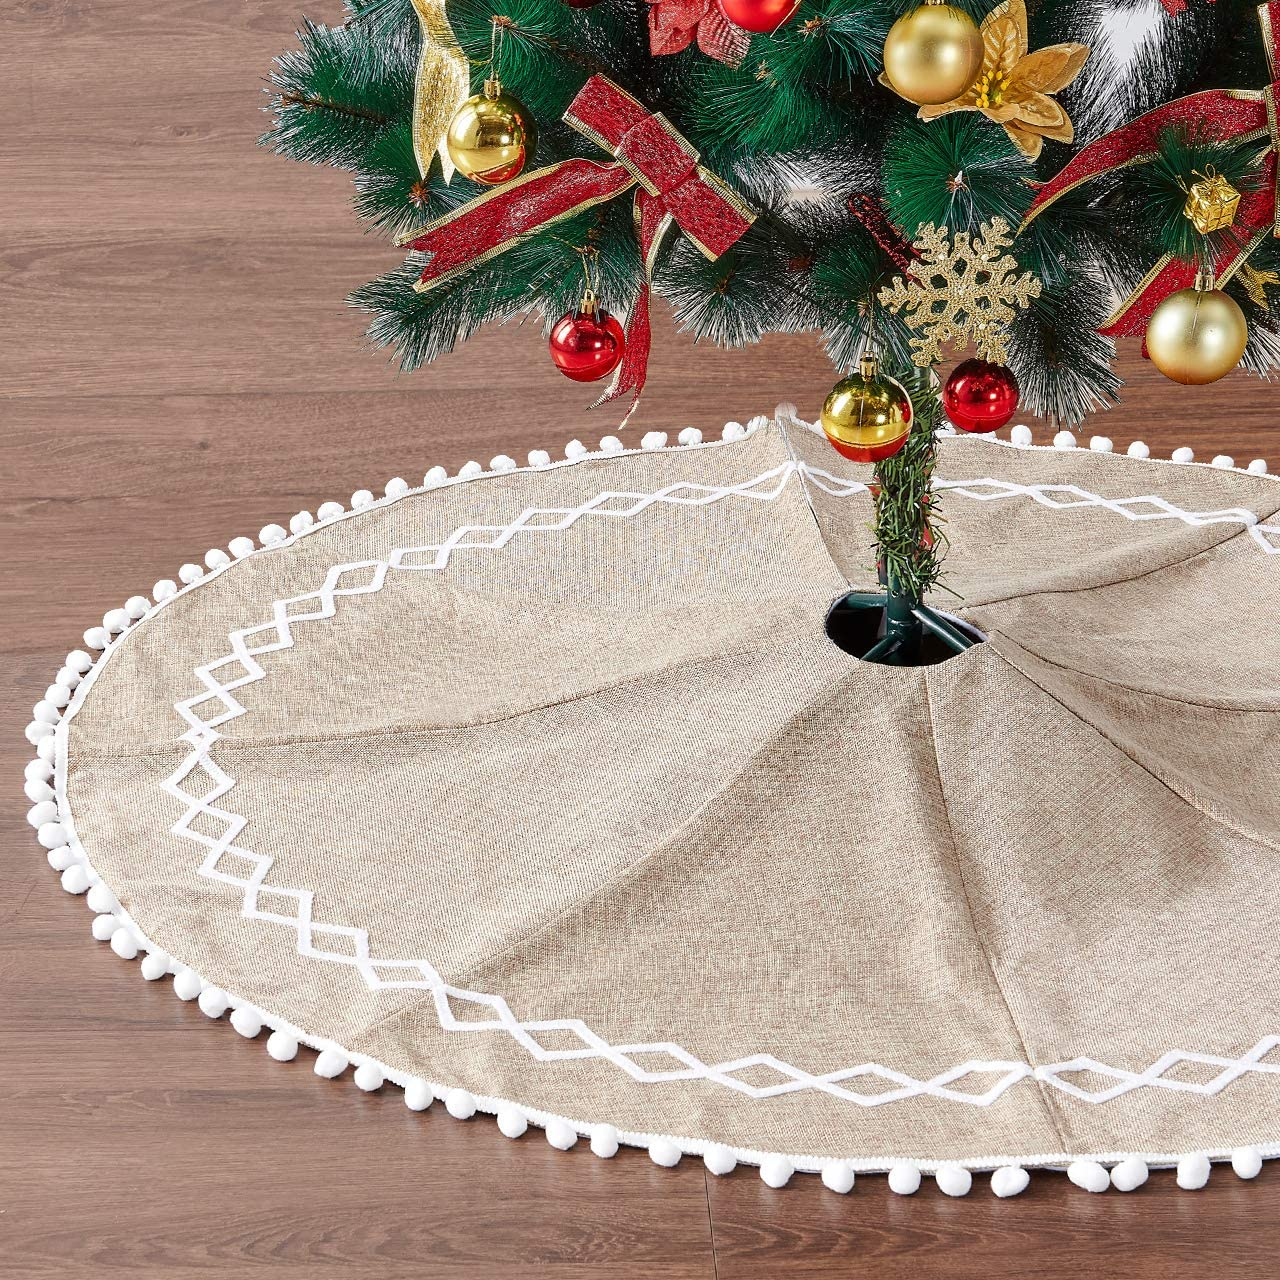 Eilaysyum Christmas Tree Skirt - 48 inches Large Natural Burlap Plain Rustic Xmas Tree Skirts with Hand-Sewn White Lace Decor for Holiday Party Christmas Decorations (Jute)